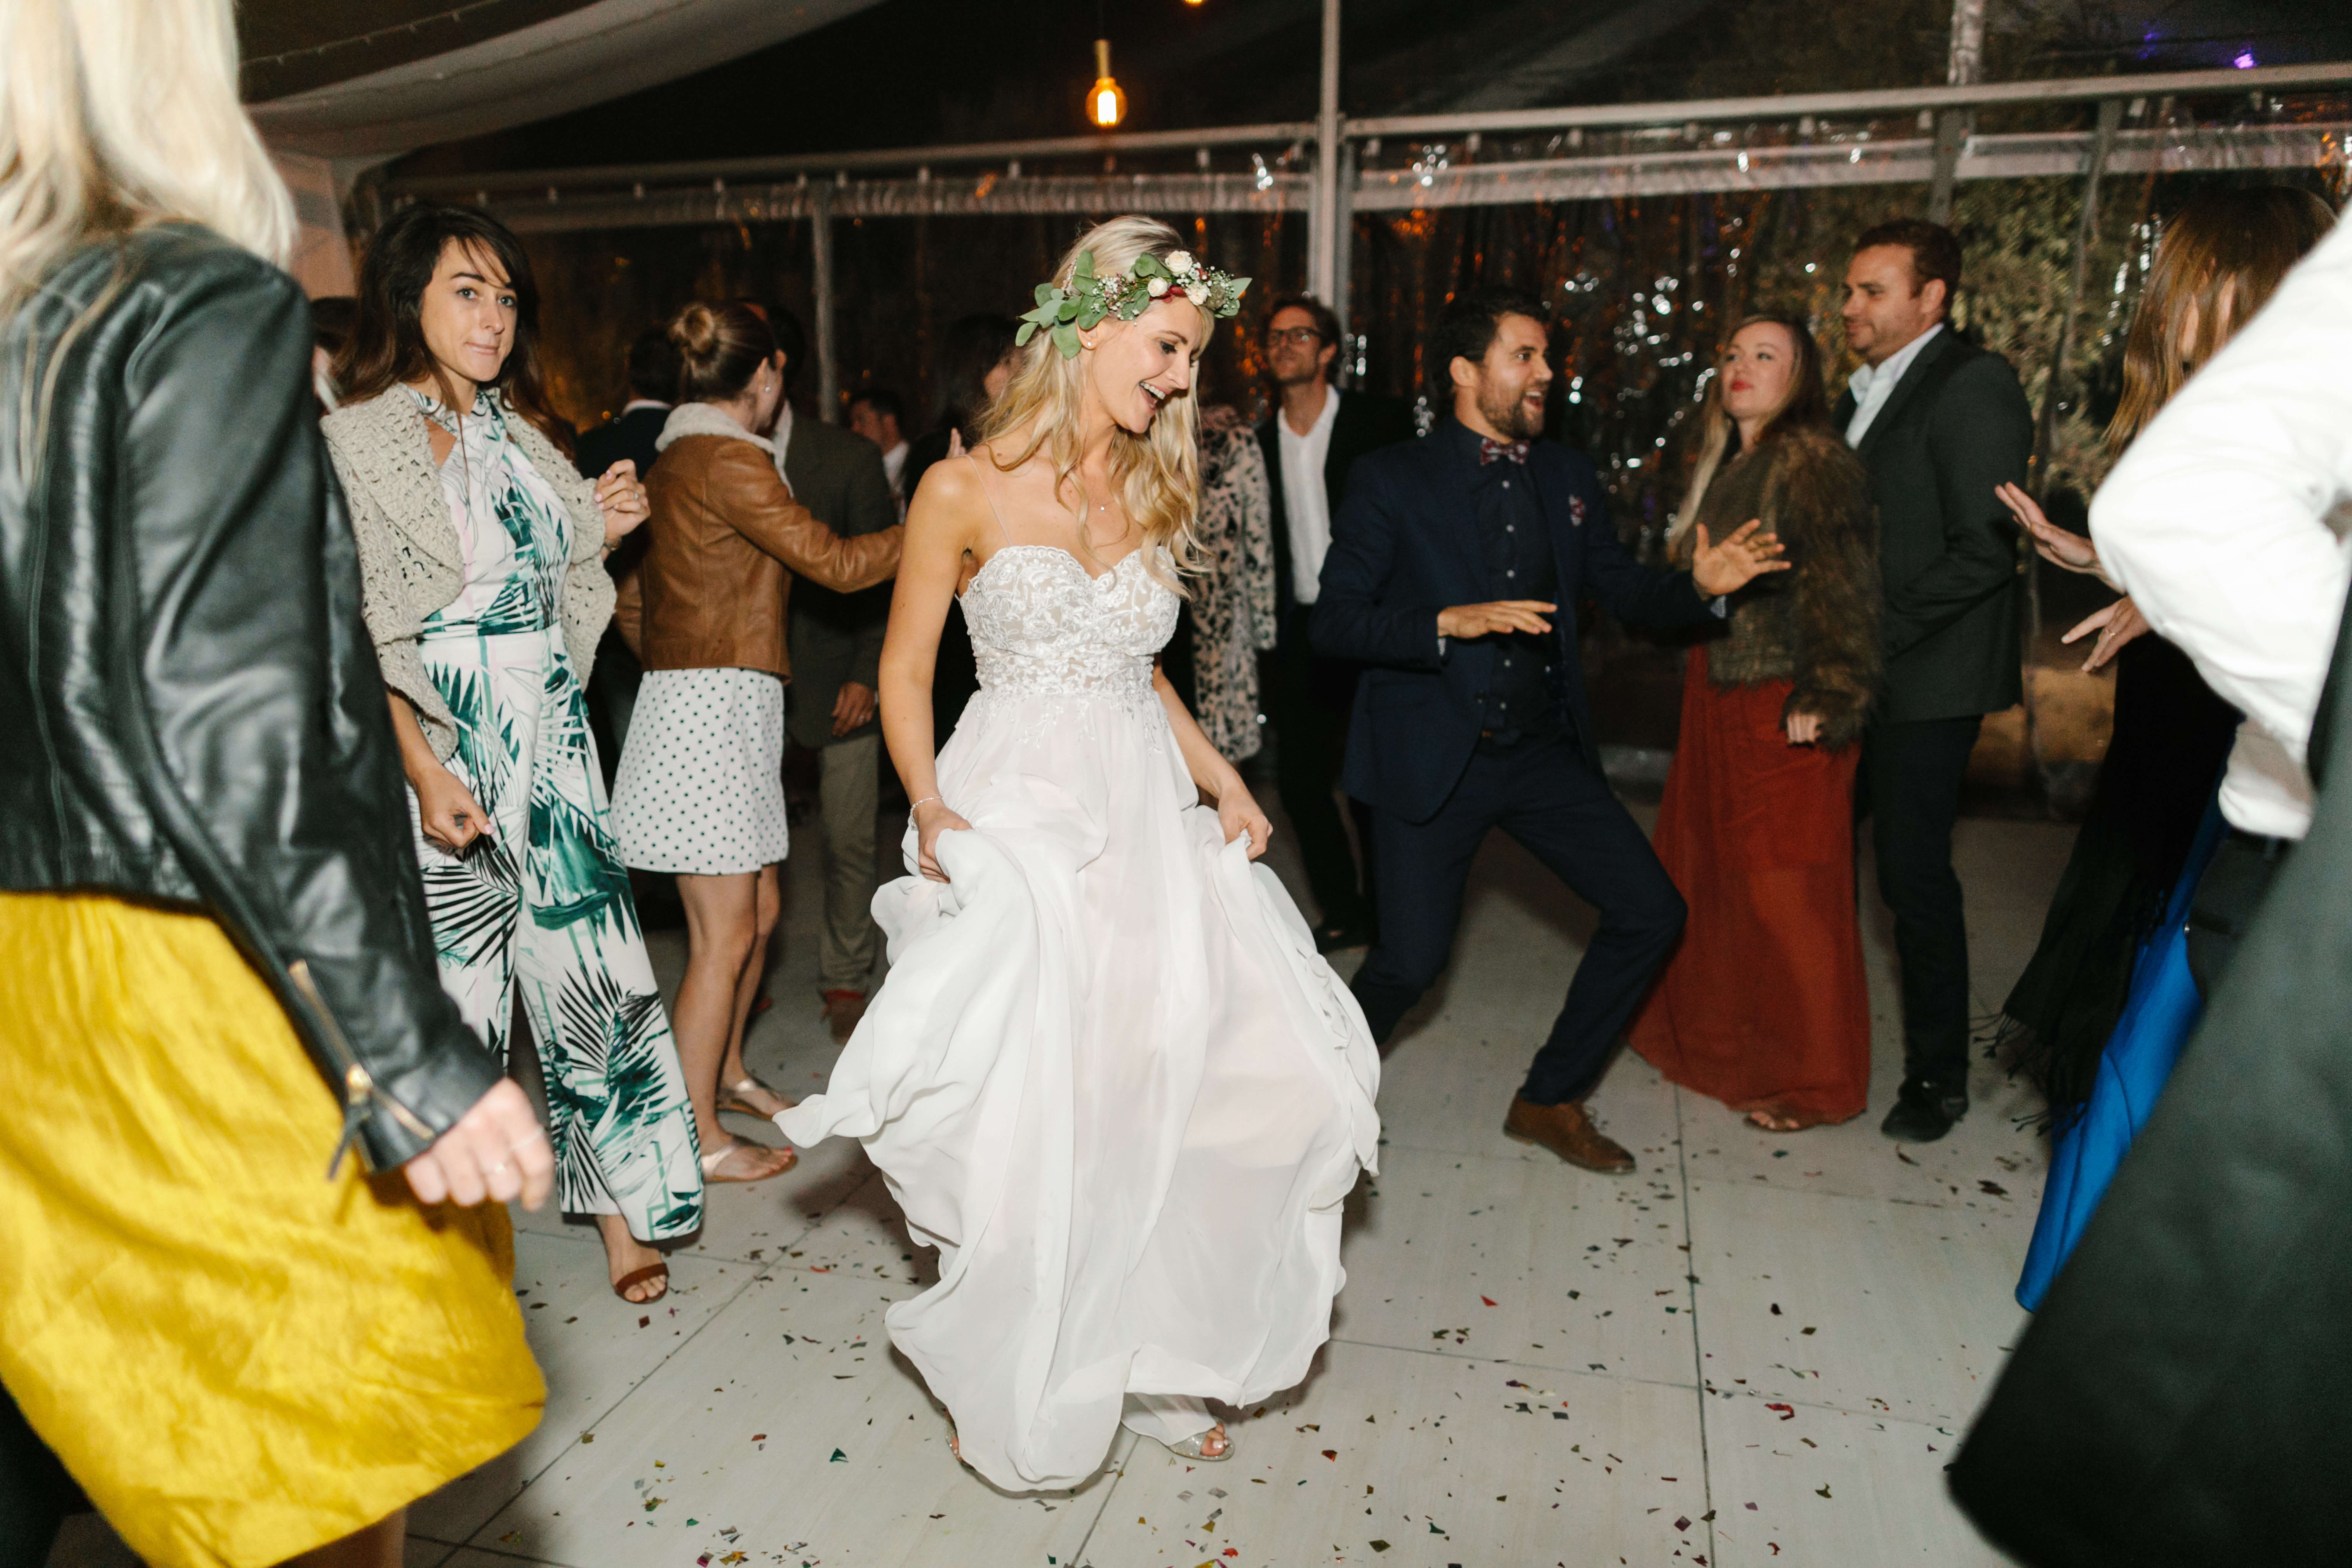 A bride in a white dress dancing on flower petals.